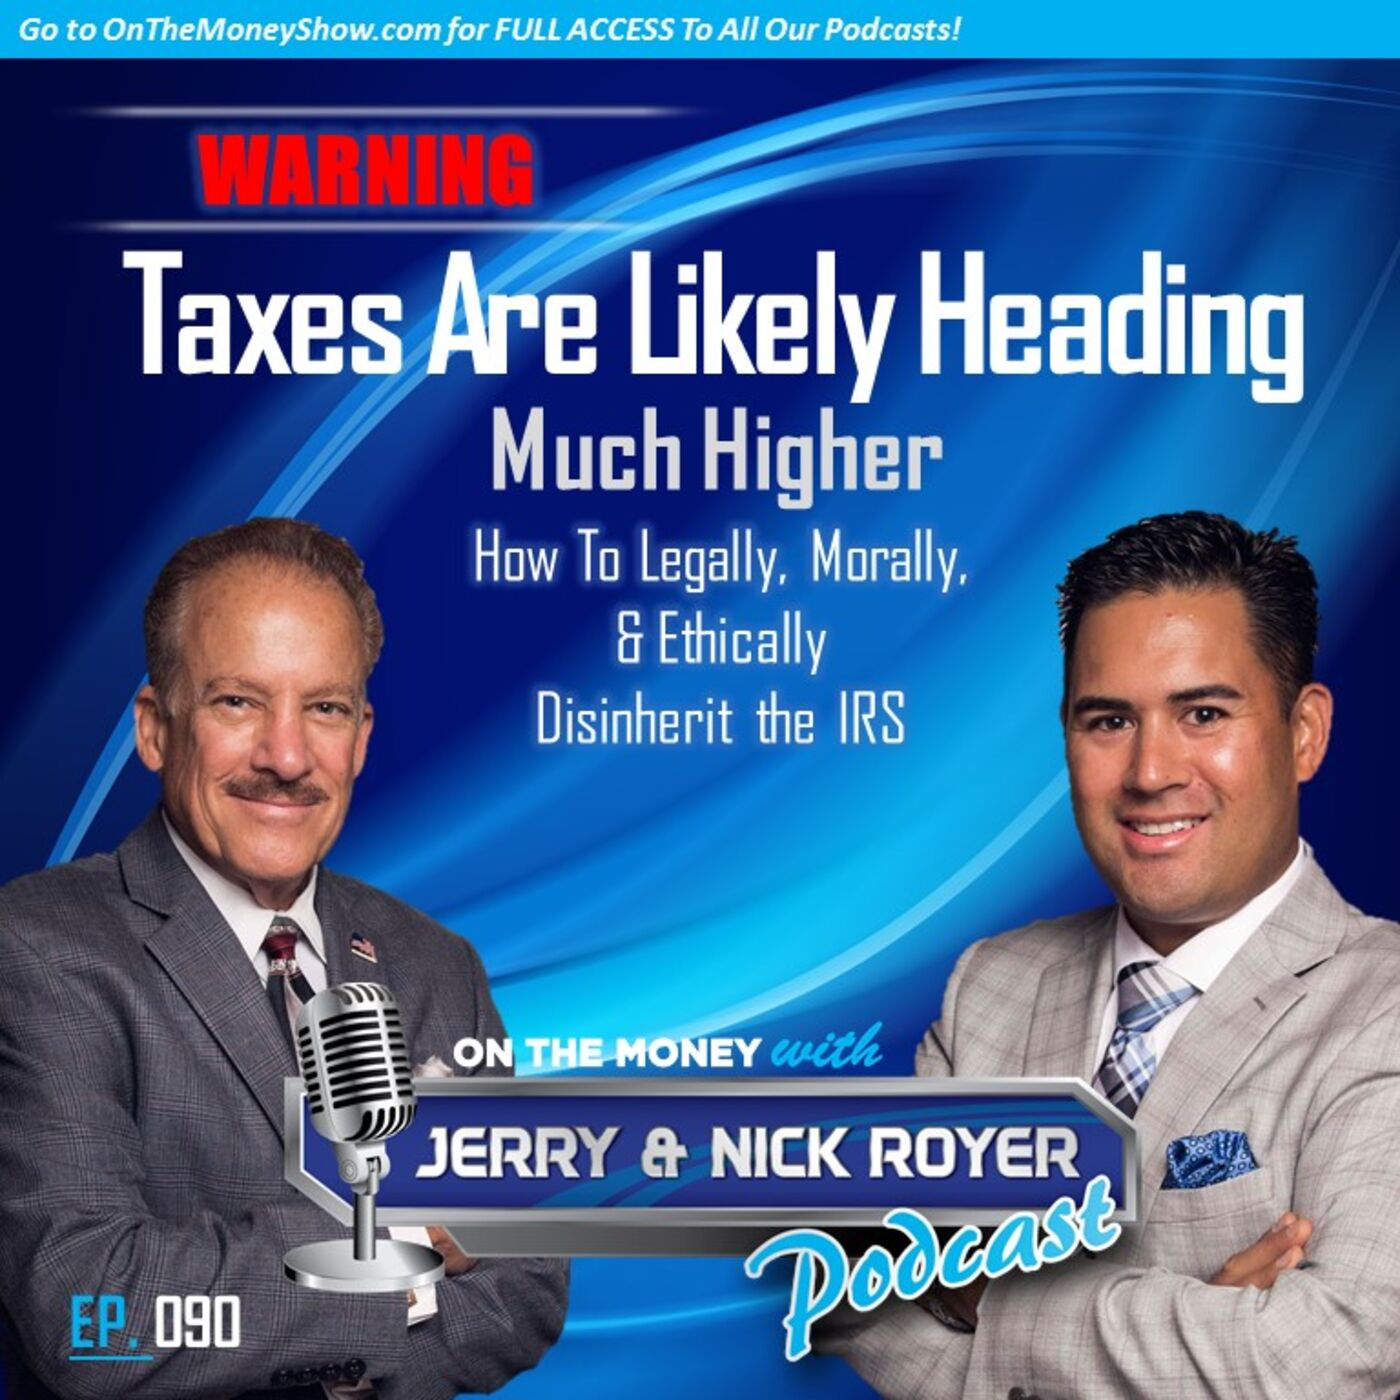 Episode #90 WARNING Taxes Are Likely Heading Higher